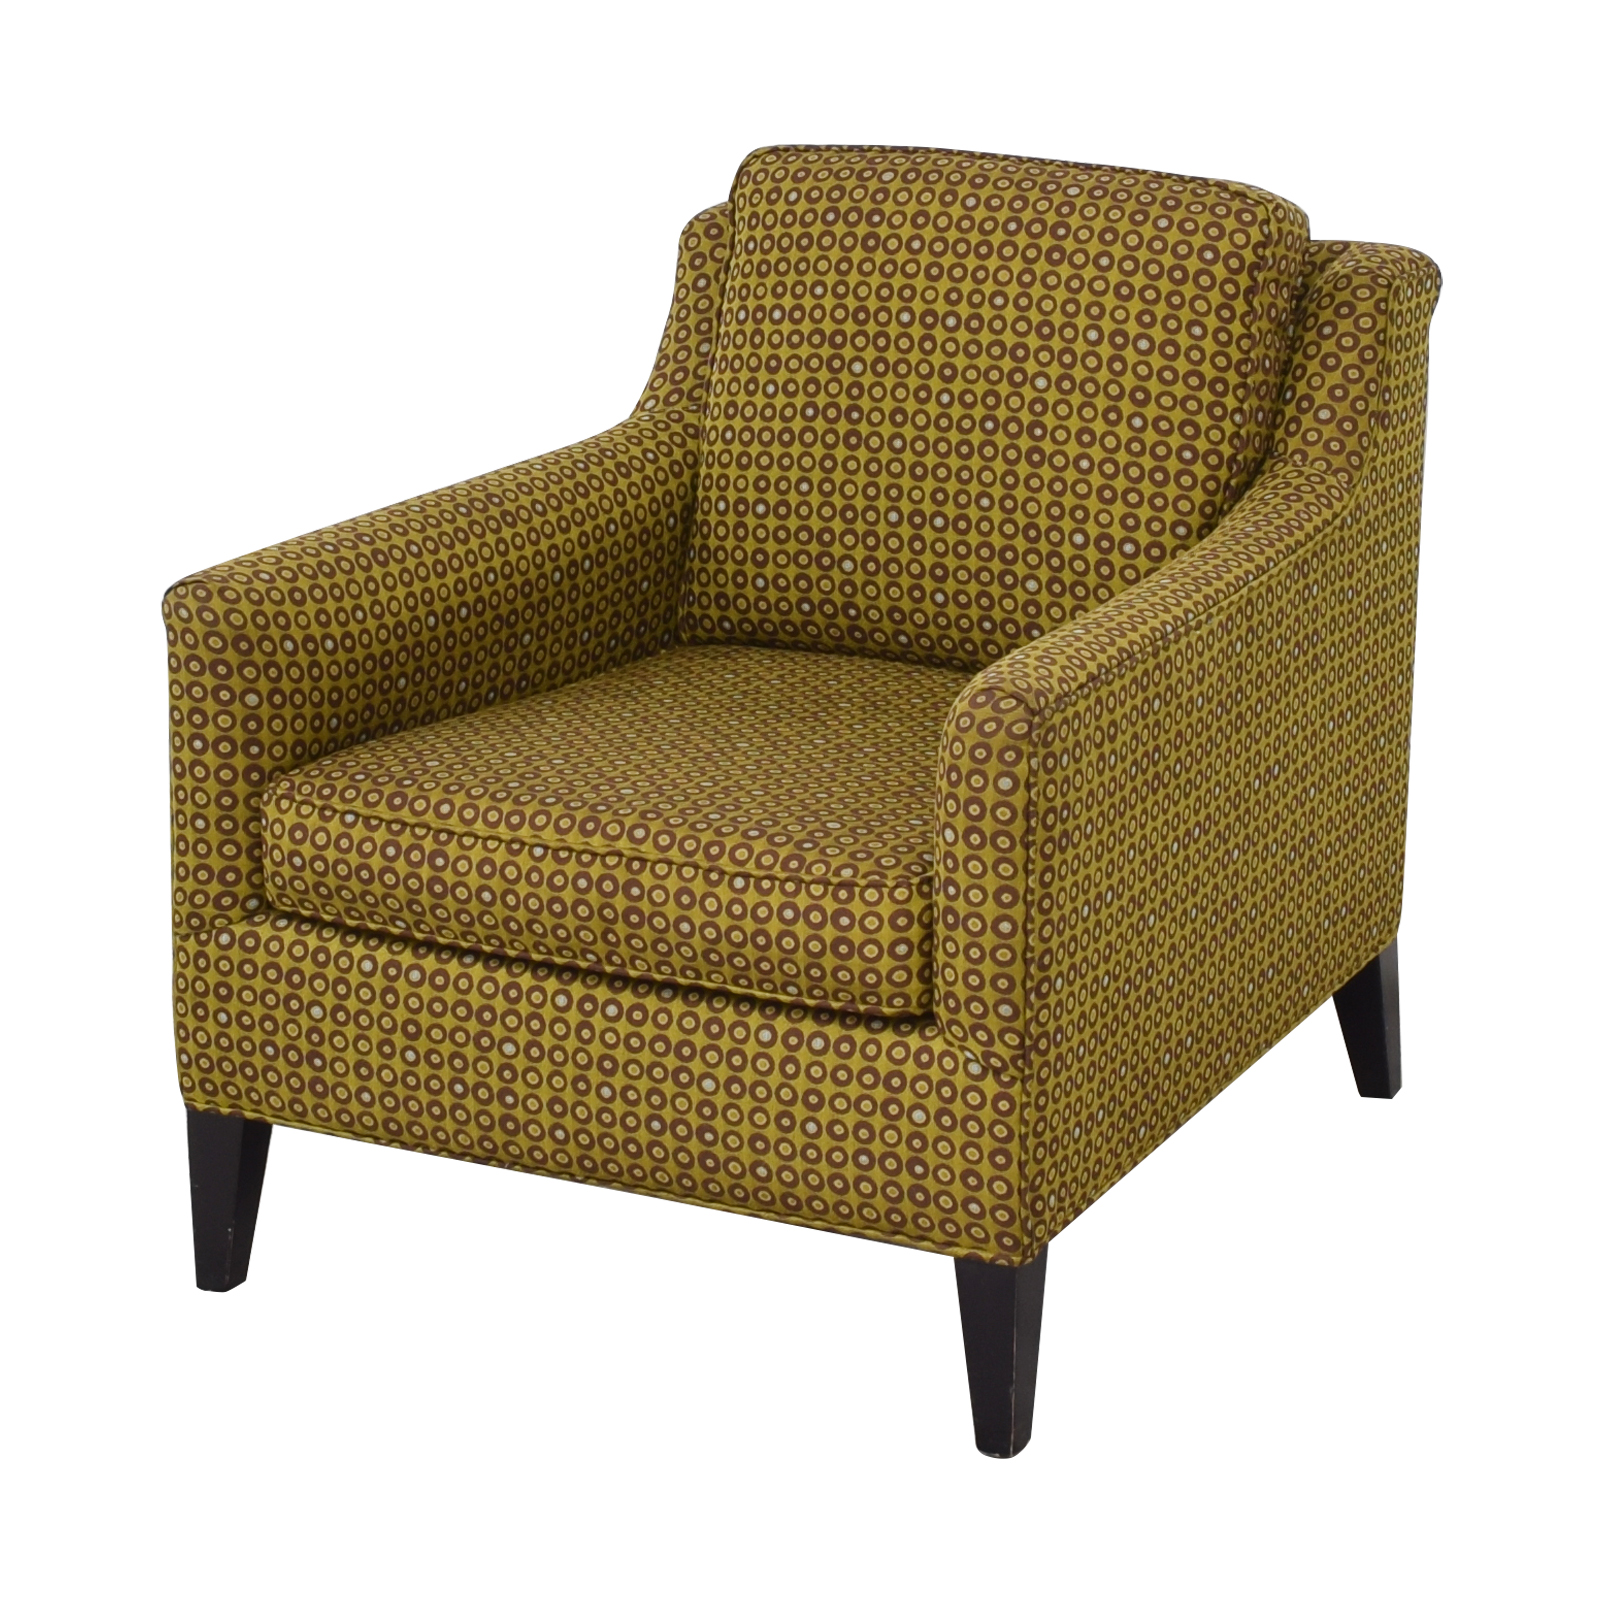 Mitchell Gold + Bob Williams Mitchell Gold + Bob Williams Club Chair coupon